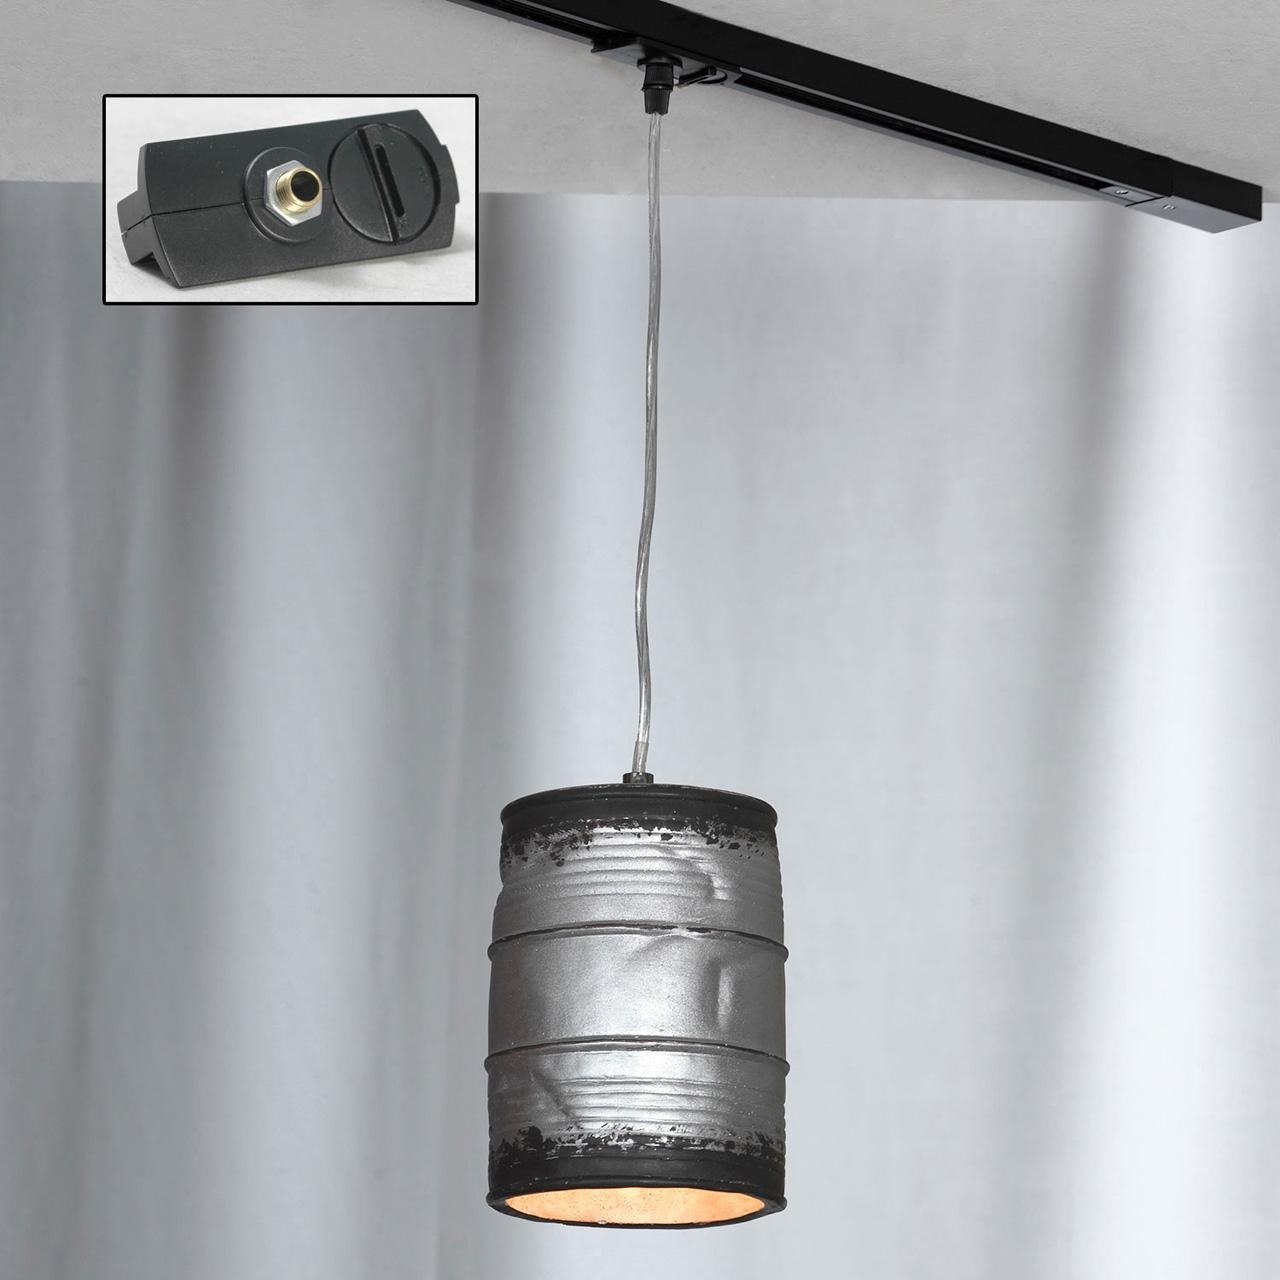 Трековый светильник однофазный Lussole LOFT Track Lights LSP-9526-TAB edison bulb loft style vintage pendant industrial light lamp with 3 lights for dining room